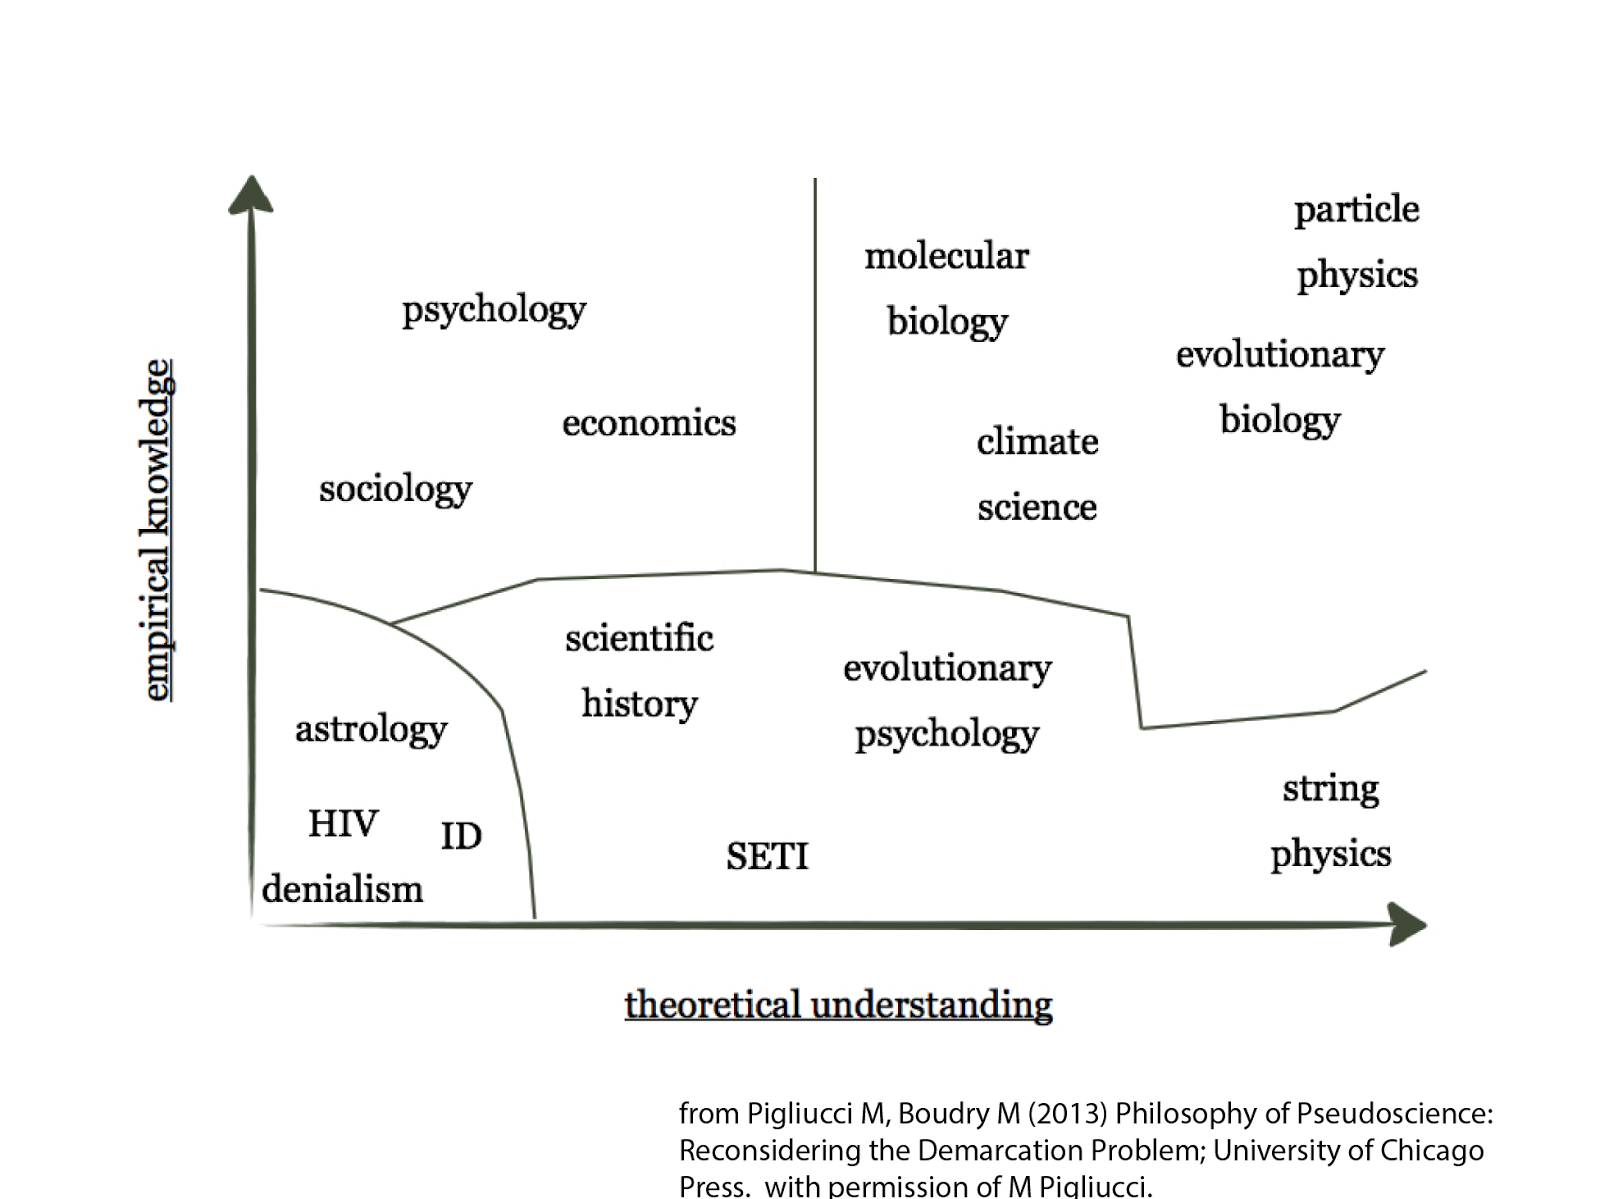 The Purpose Of This Essay Is To Look At Possible Boundaries Between Science And Pseudoscience As Well As A Couple Of Interesting Observations As They Apply